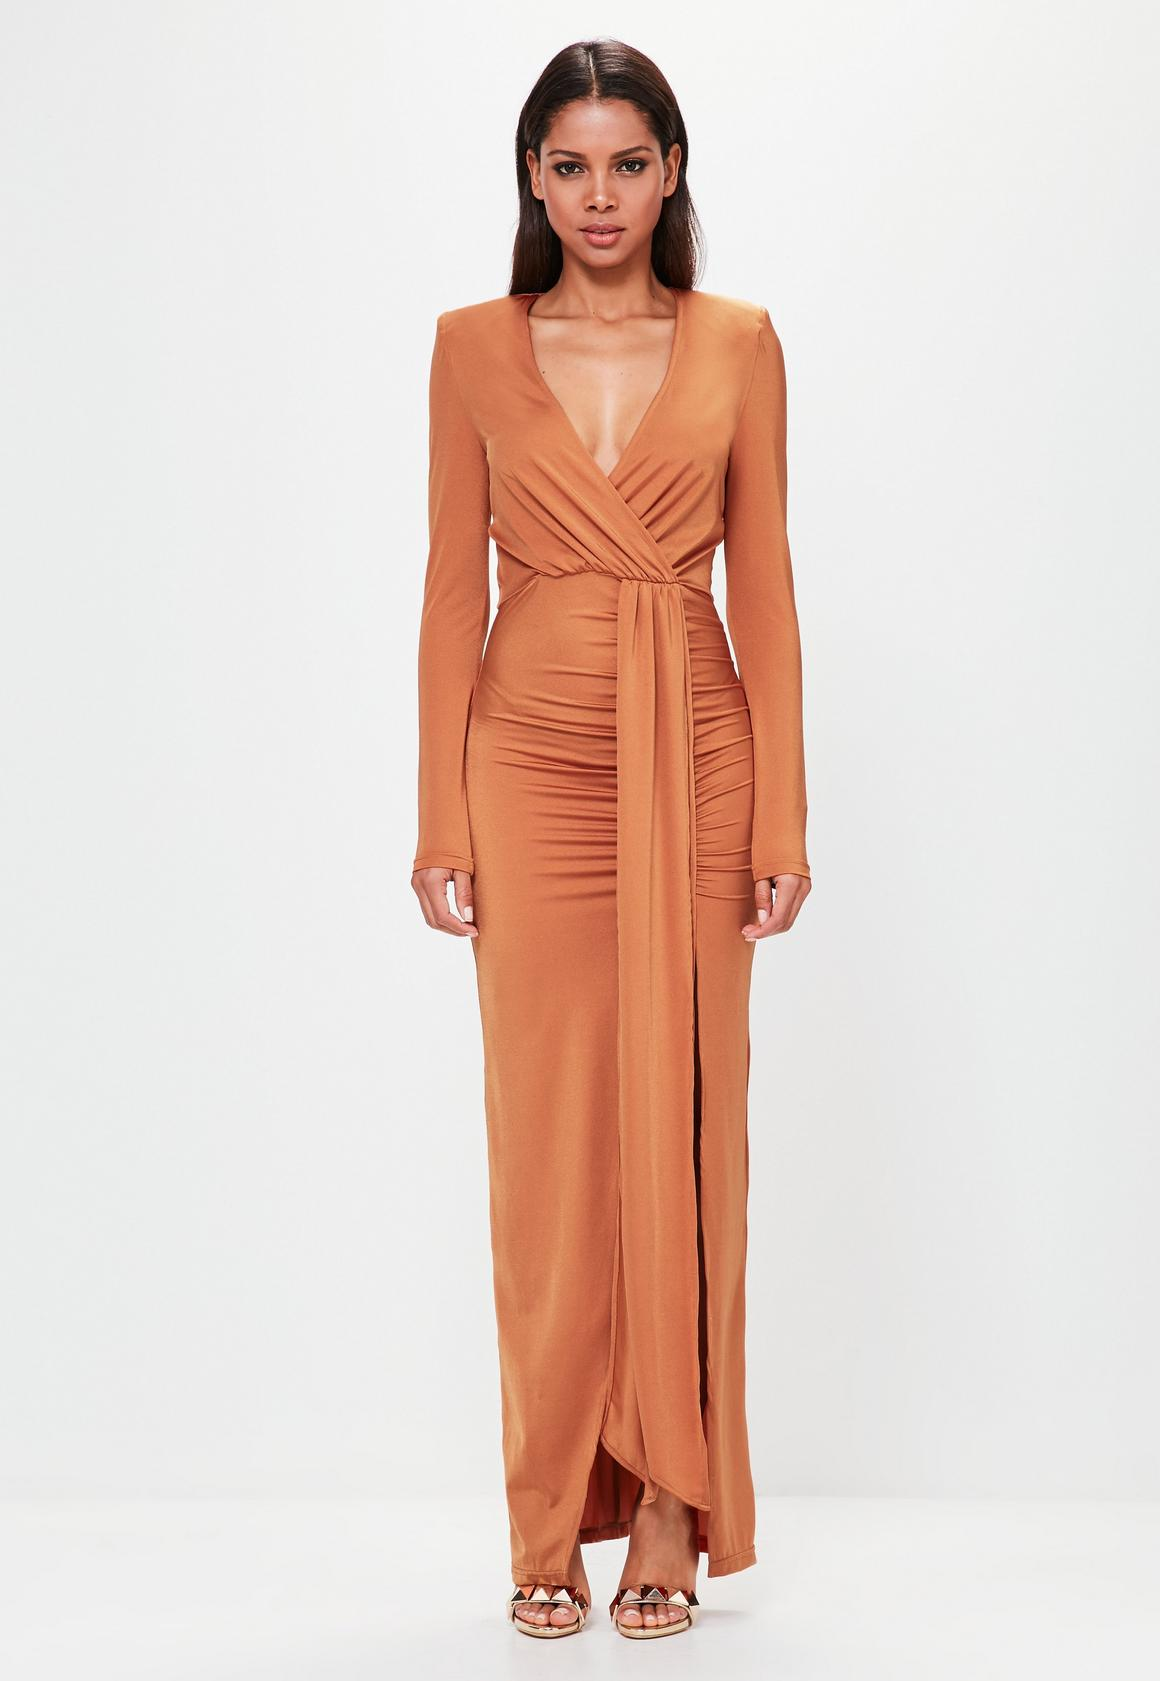 Peace + Love Orange Long Sleeve Wrap Maxi Dress | Missguided